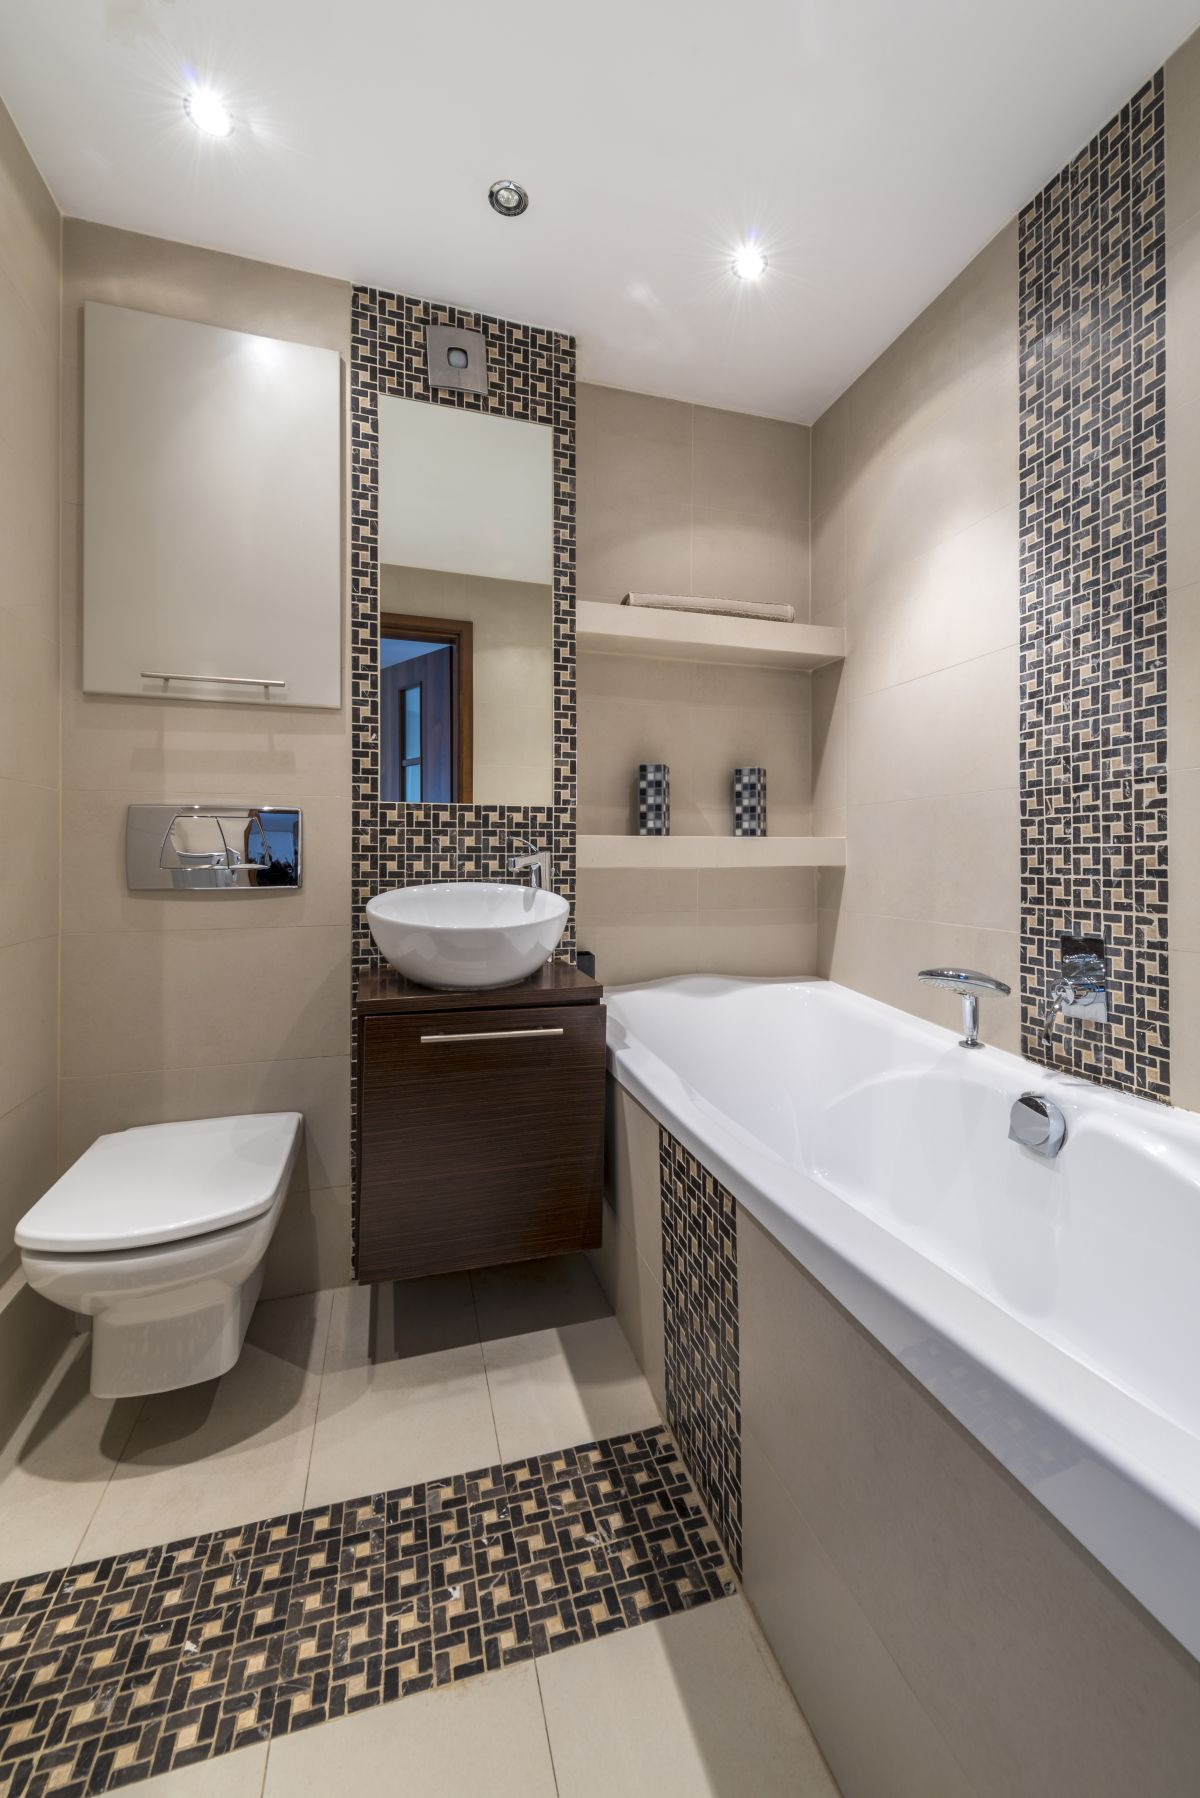 Size matters bathroom renovation costs for your size bath for Average cost for small bathroom remodel